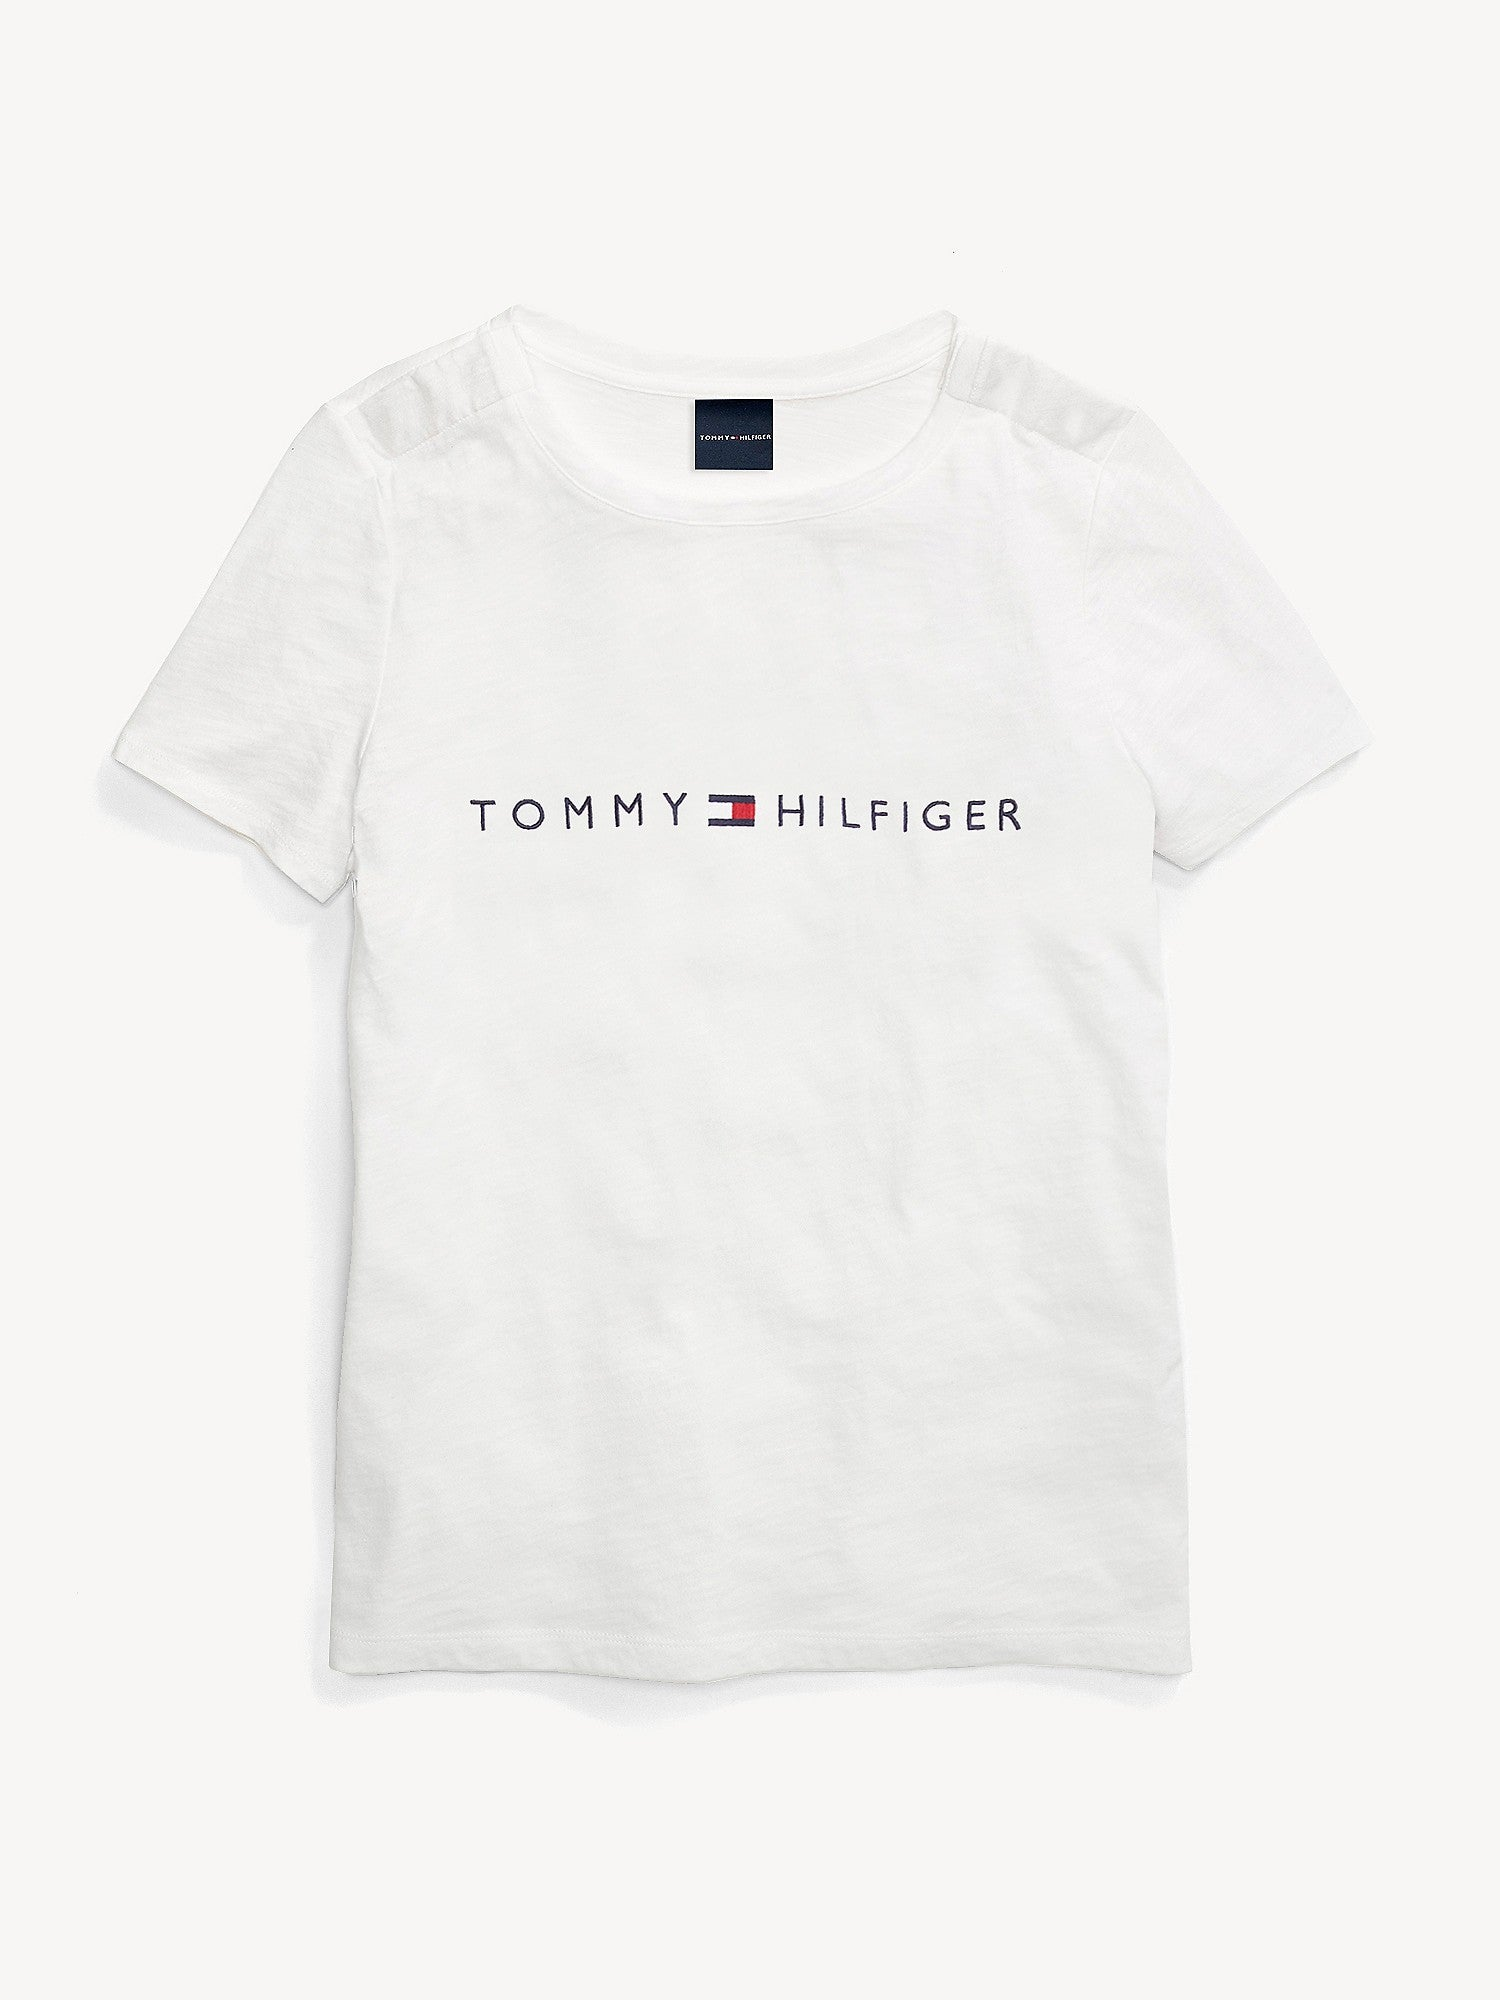 Tommy Hilfiger T-Shirt - White